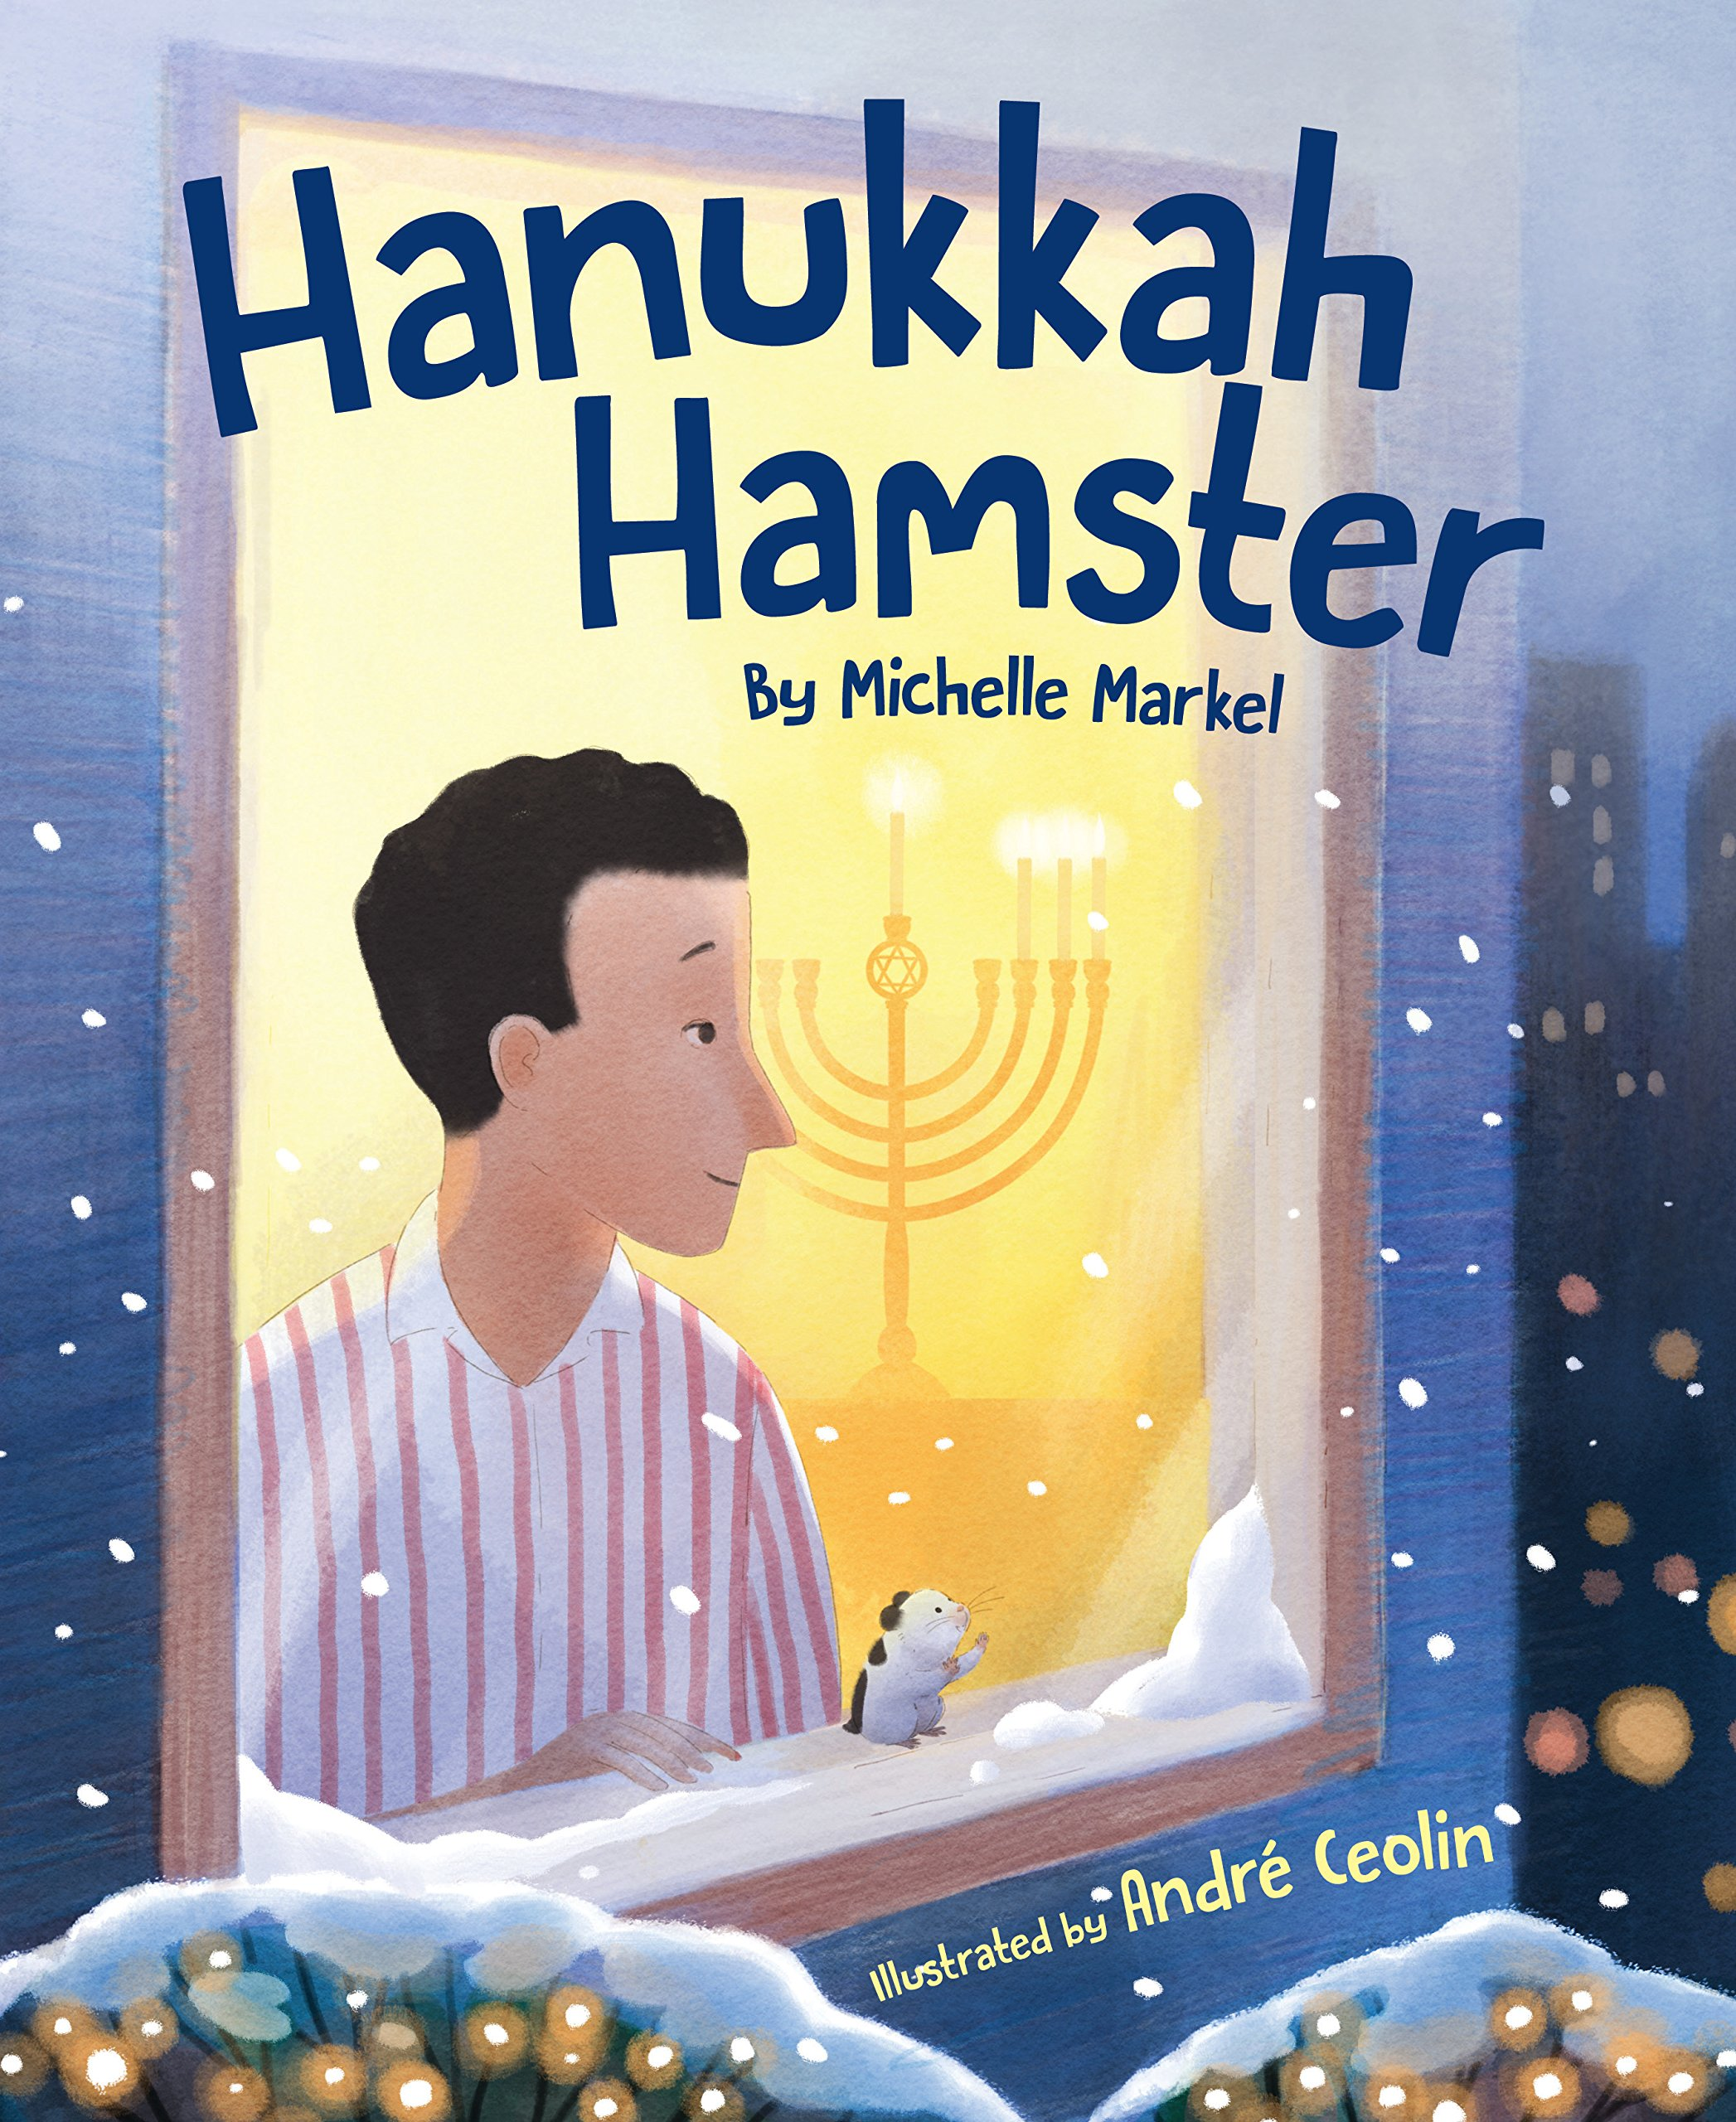 Image result for hanukkah hamster amazon